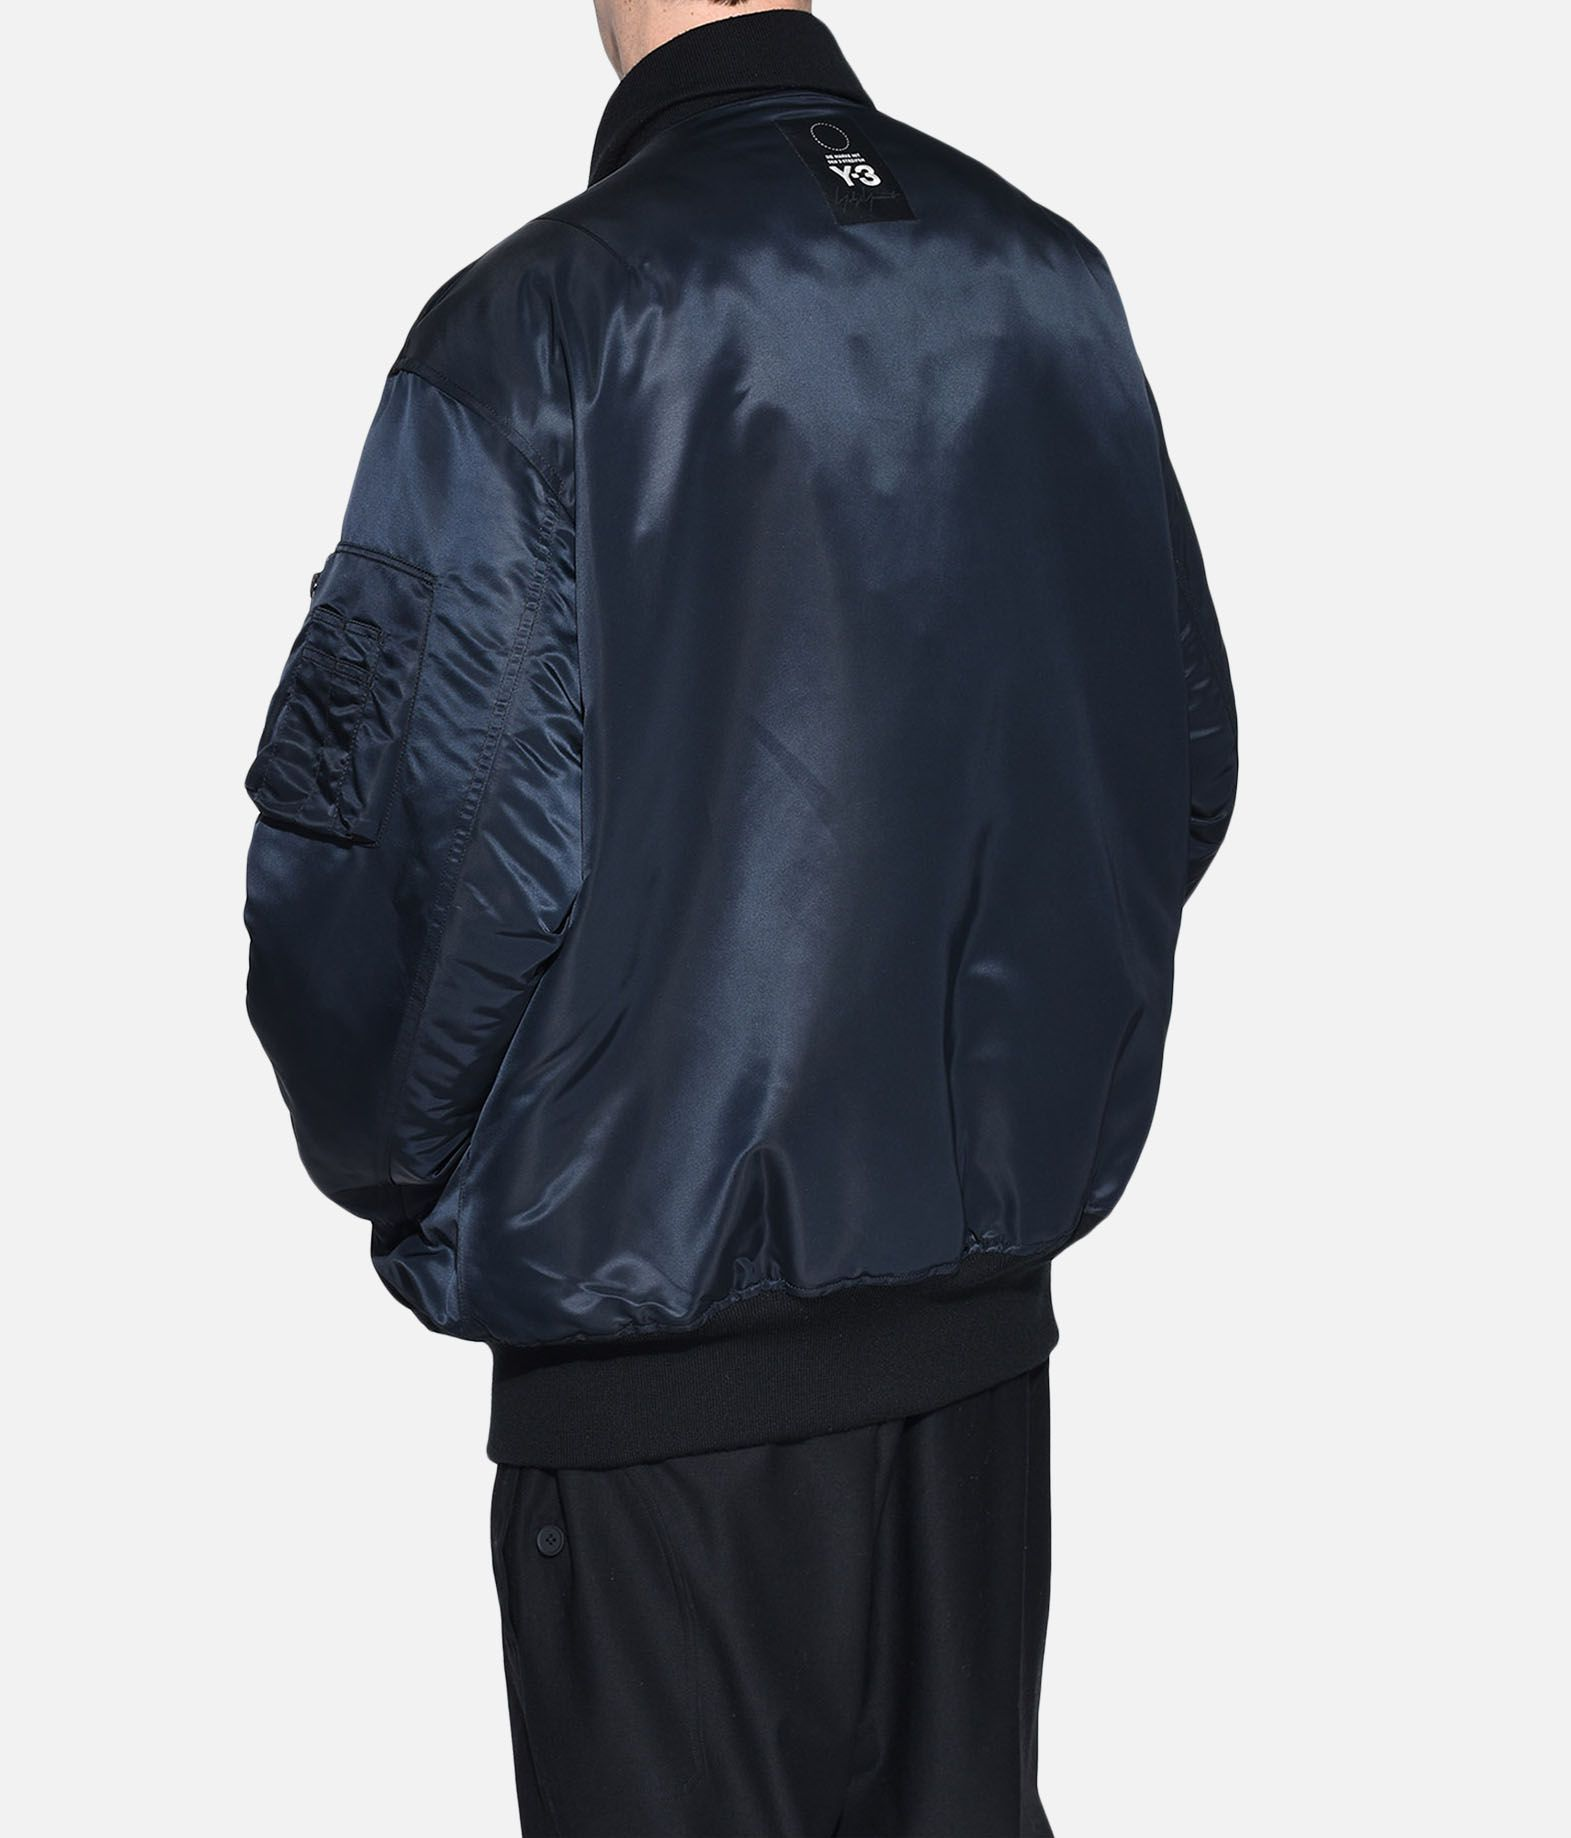 Y-3 Y-3 Oversize Reversible Bomber Jacket Mid-length jacket Man e